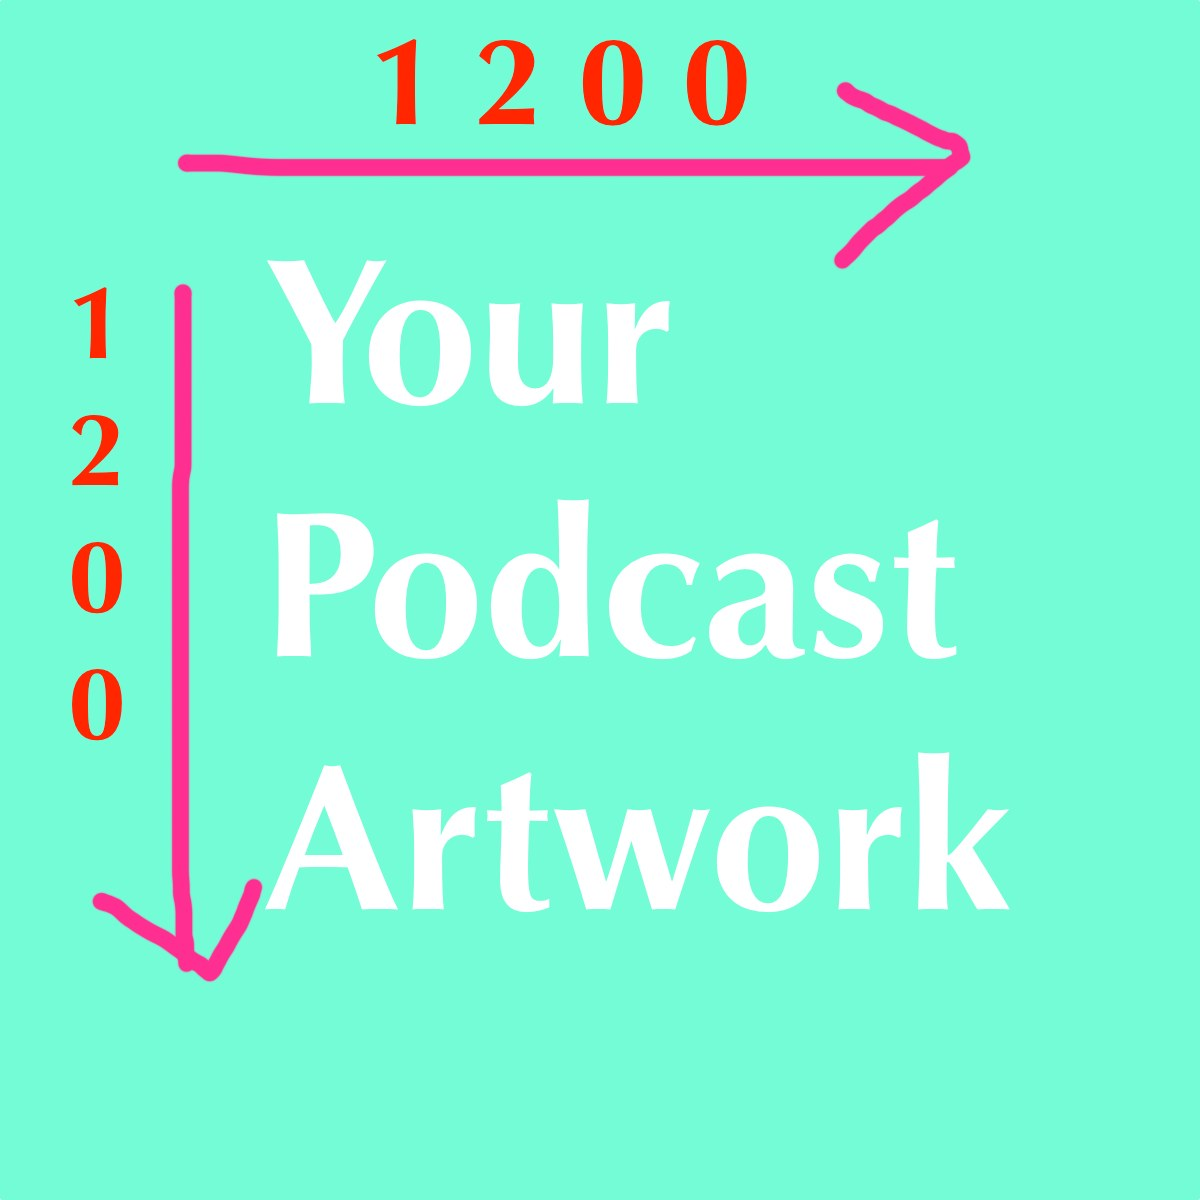 itunes podcast artwork specification are 1200 x 1200 pixels